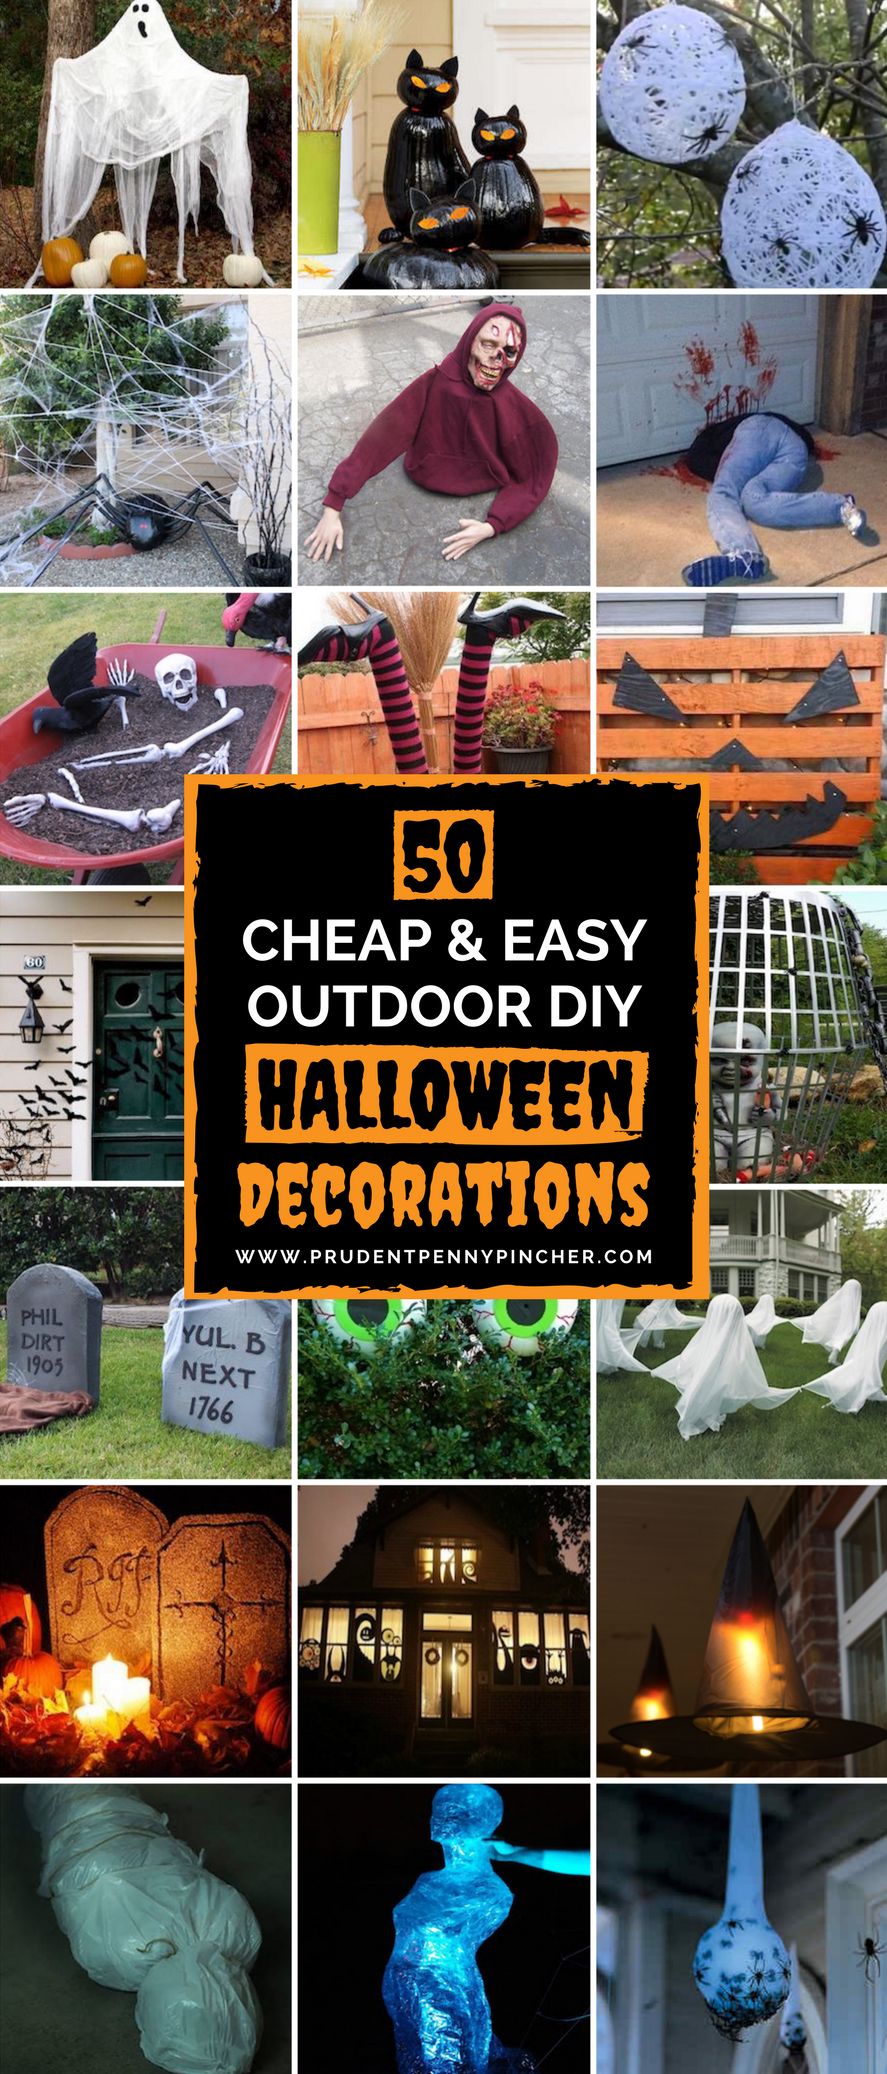 50 Cheap And Easy Outdoor Halloween Decor Diy Ideas Easy